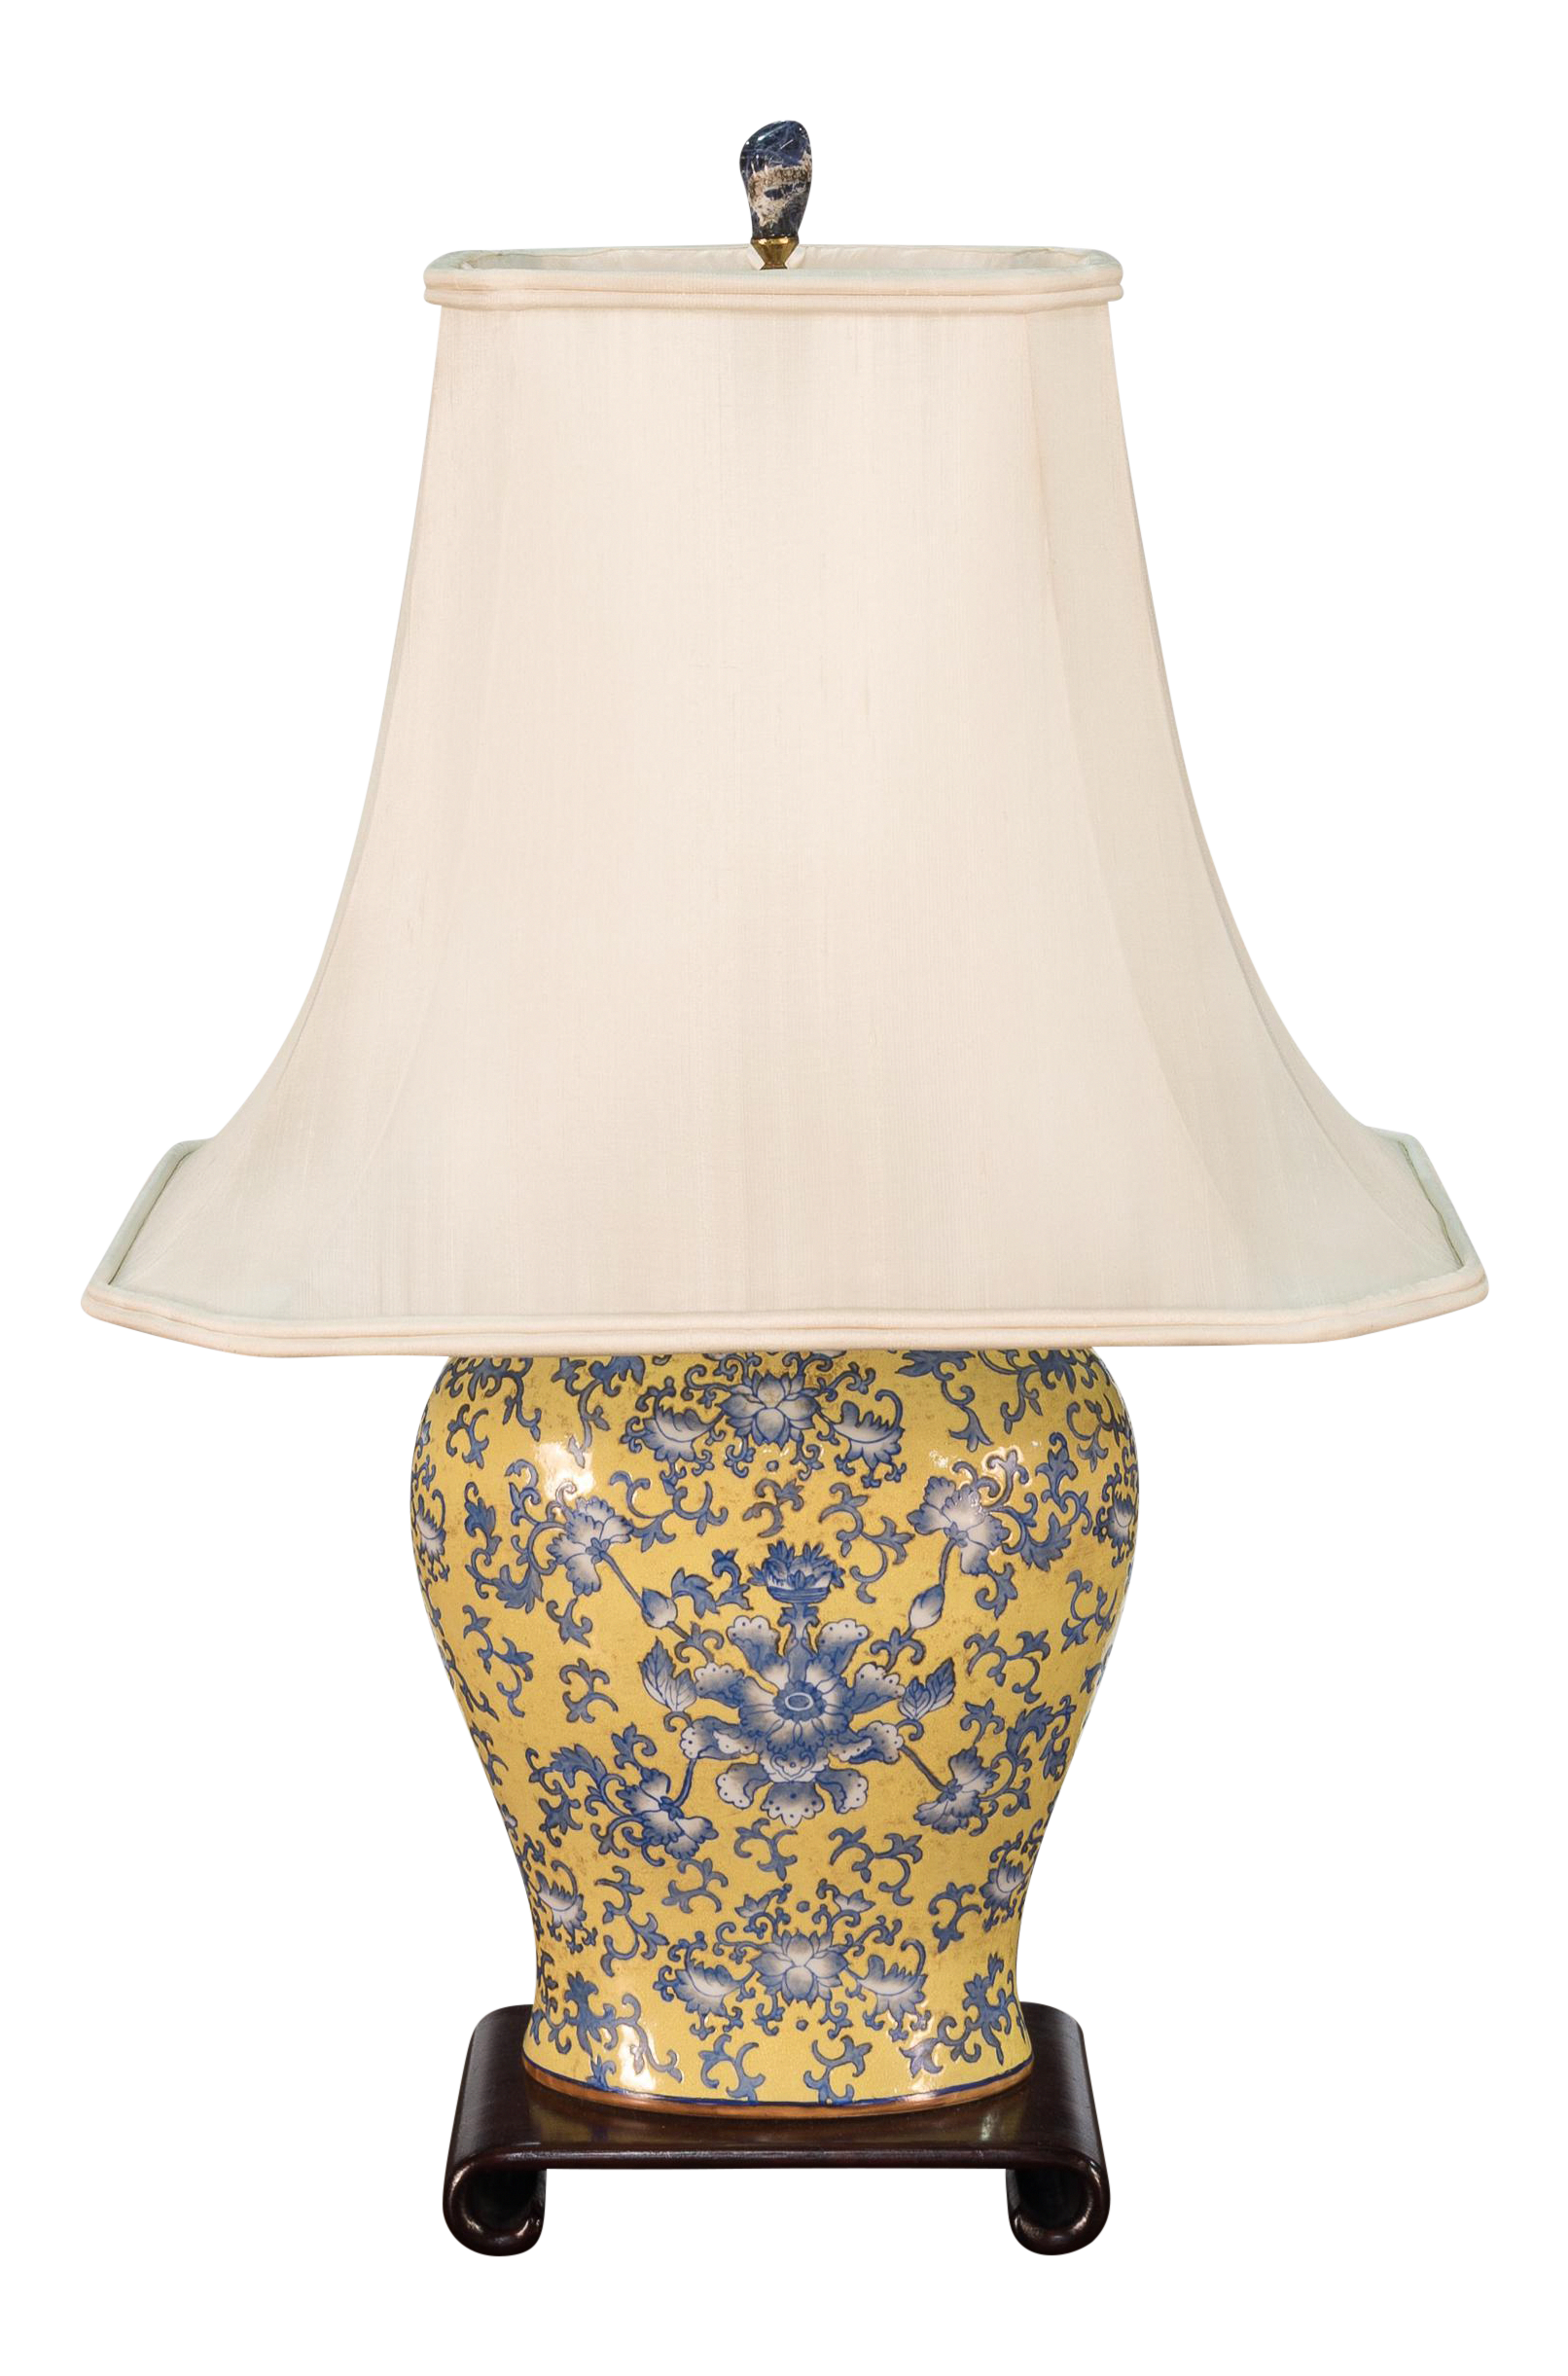 """Blue and White Floral Porcelain Oval Scallop Ginger Jar Table Lamp 22/"""" …"""